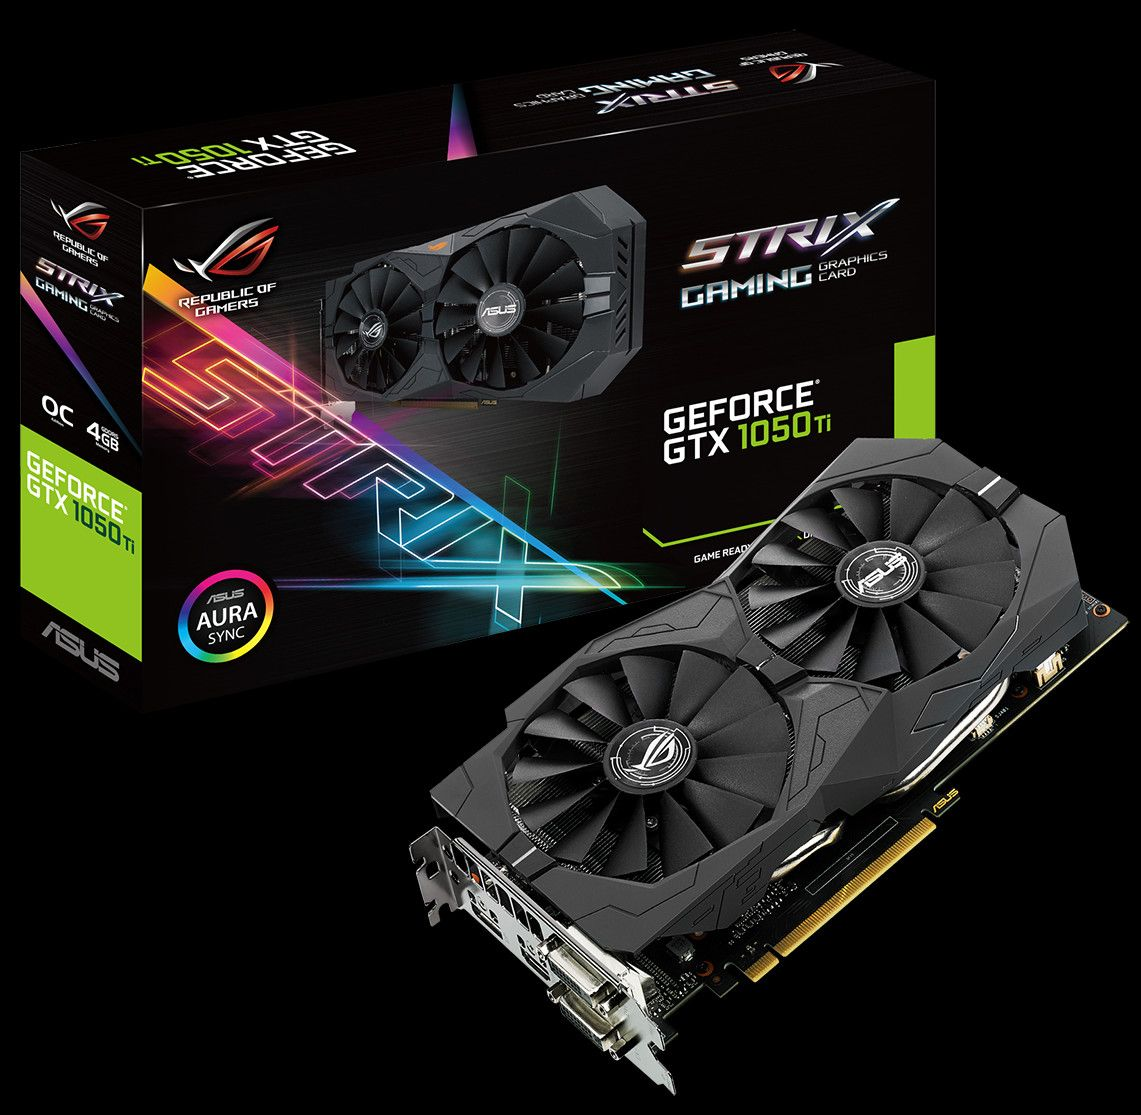 ASUS today announced the Republic of Gamers (ROG) Strix ...